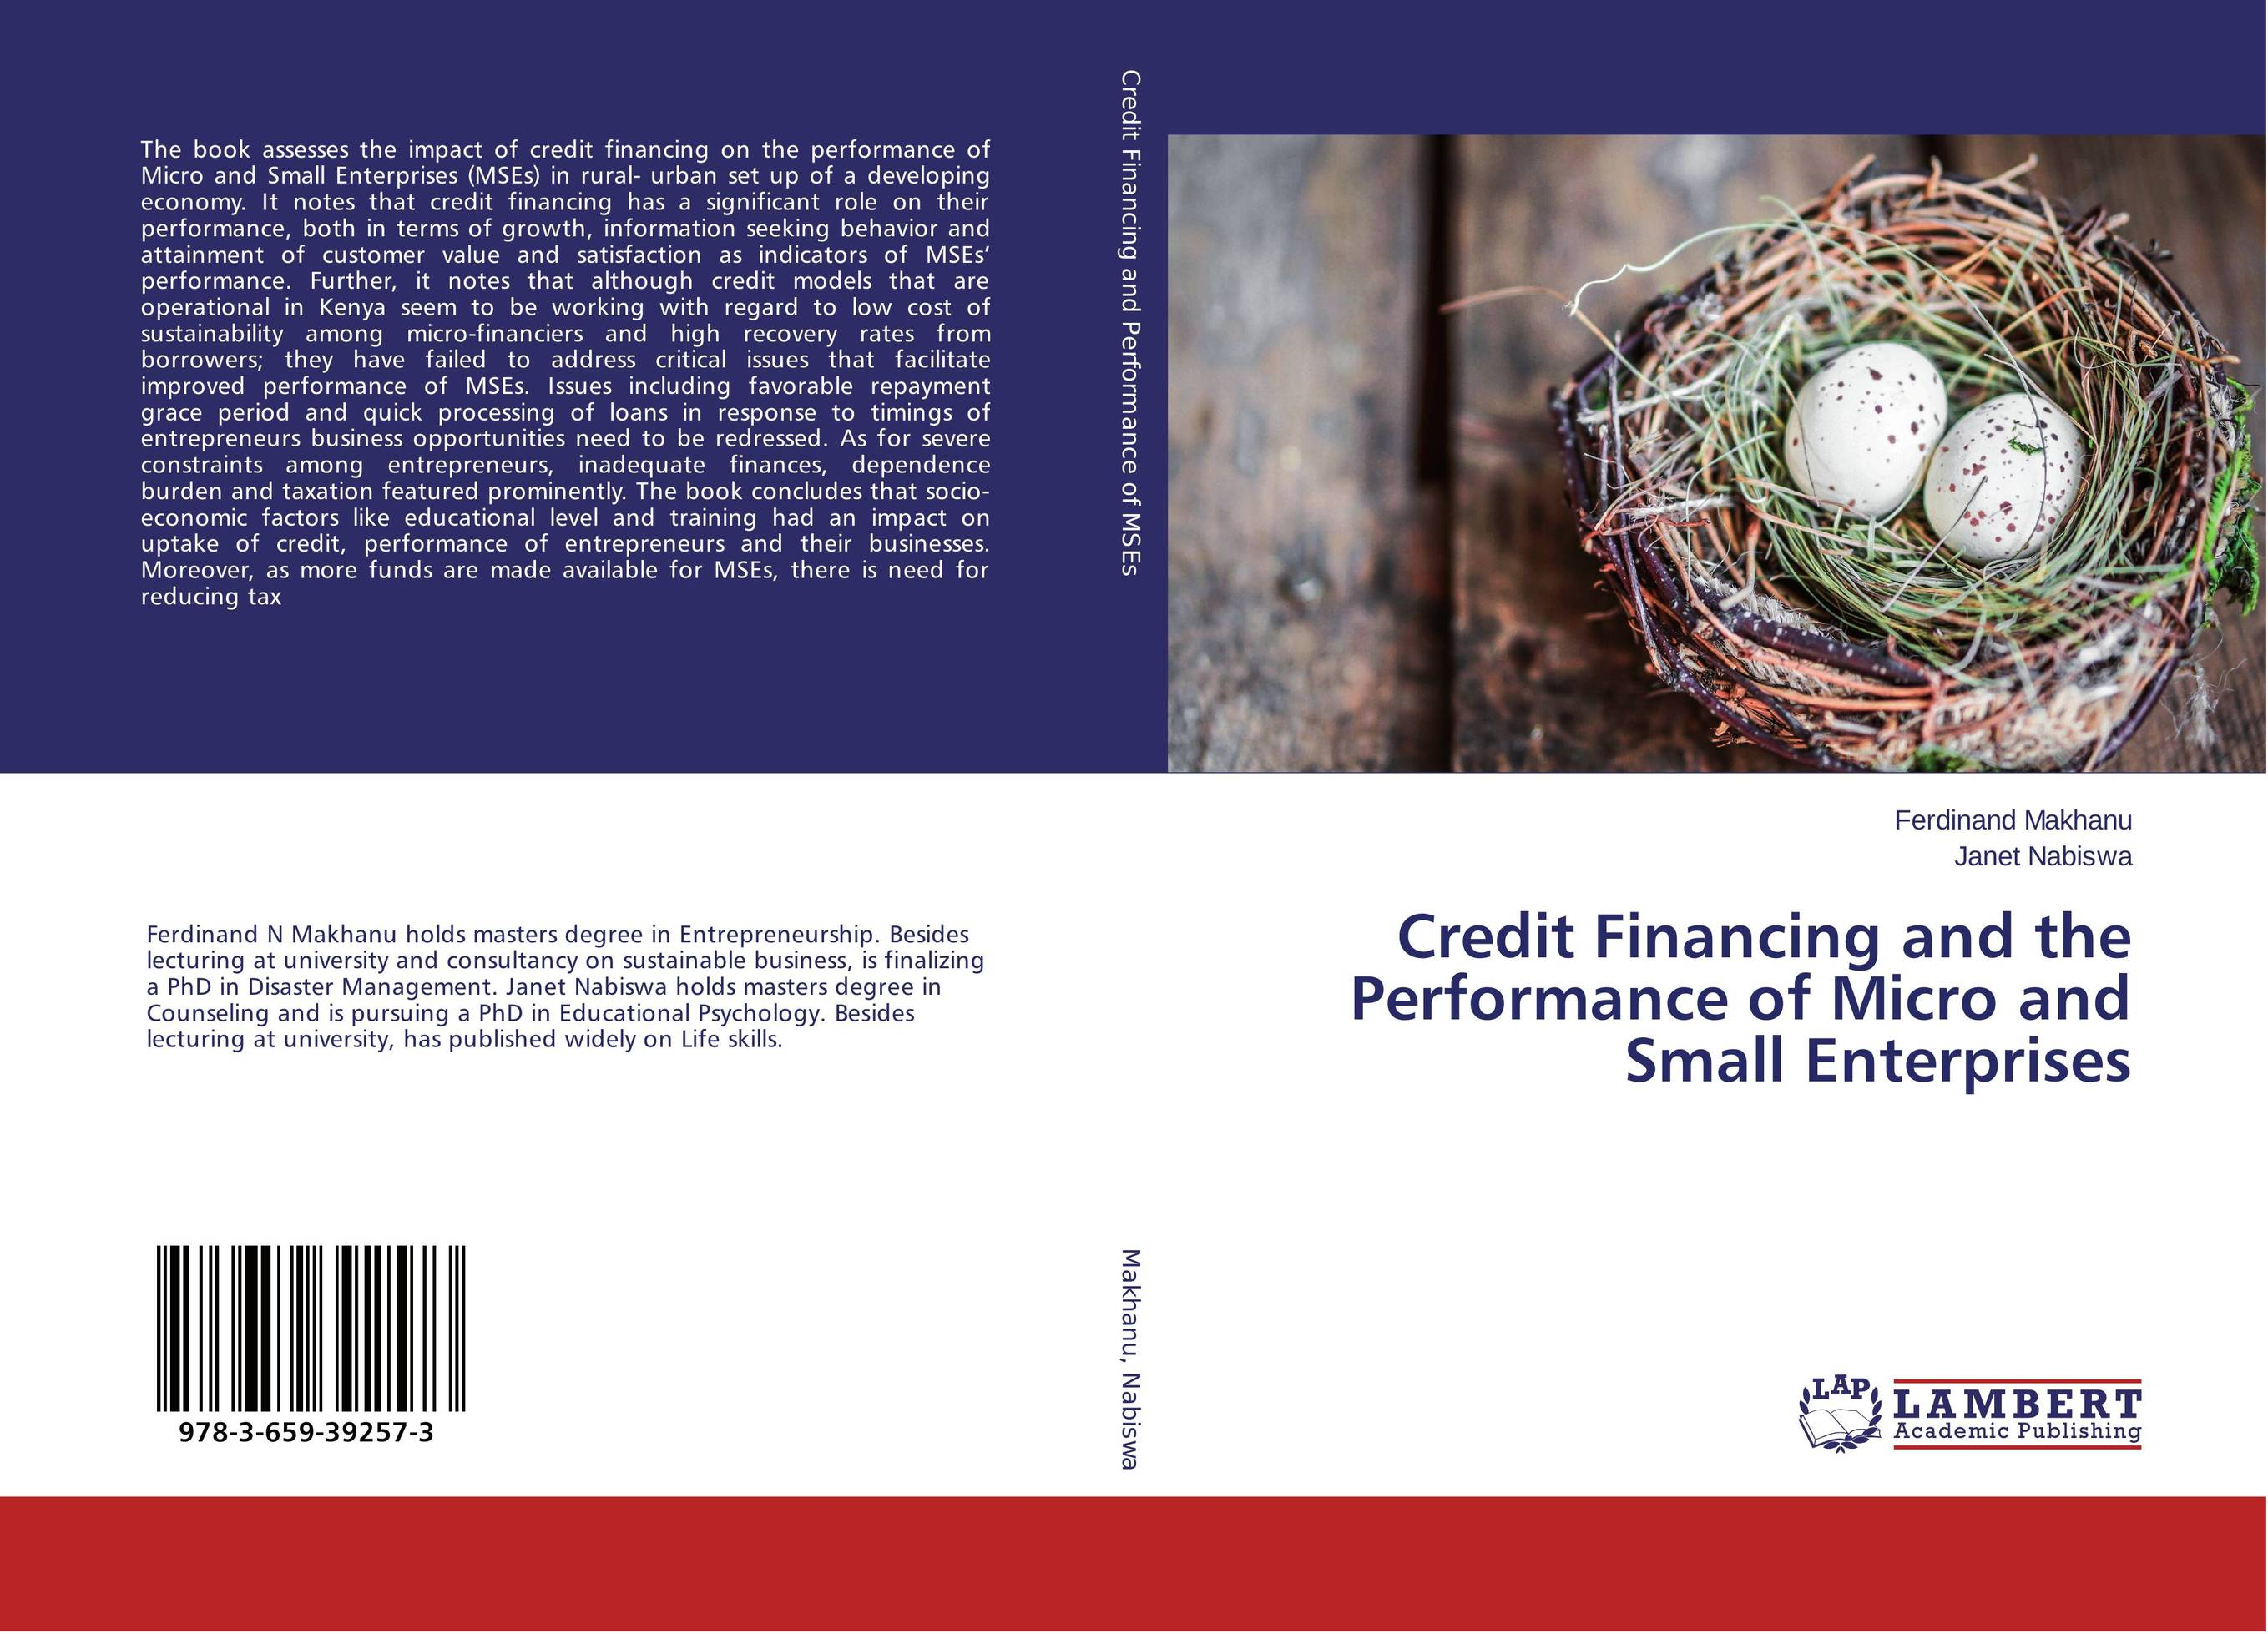 Credit Financing and the Performance of Micro and Small Enterprises